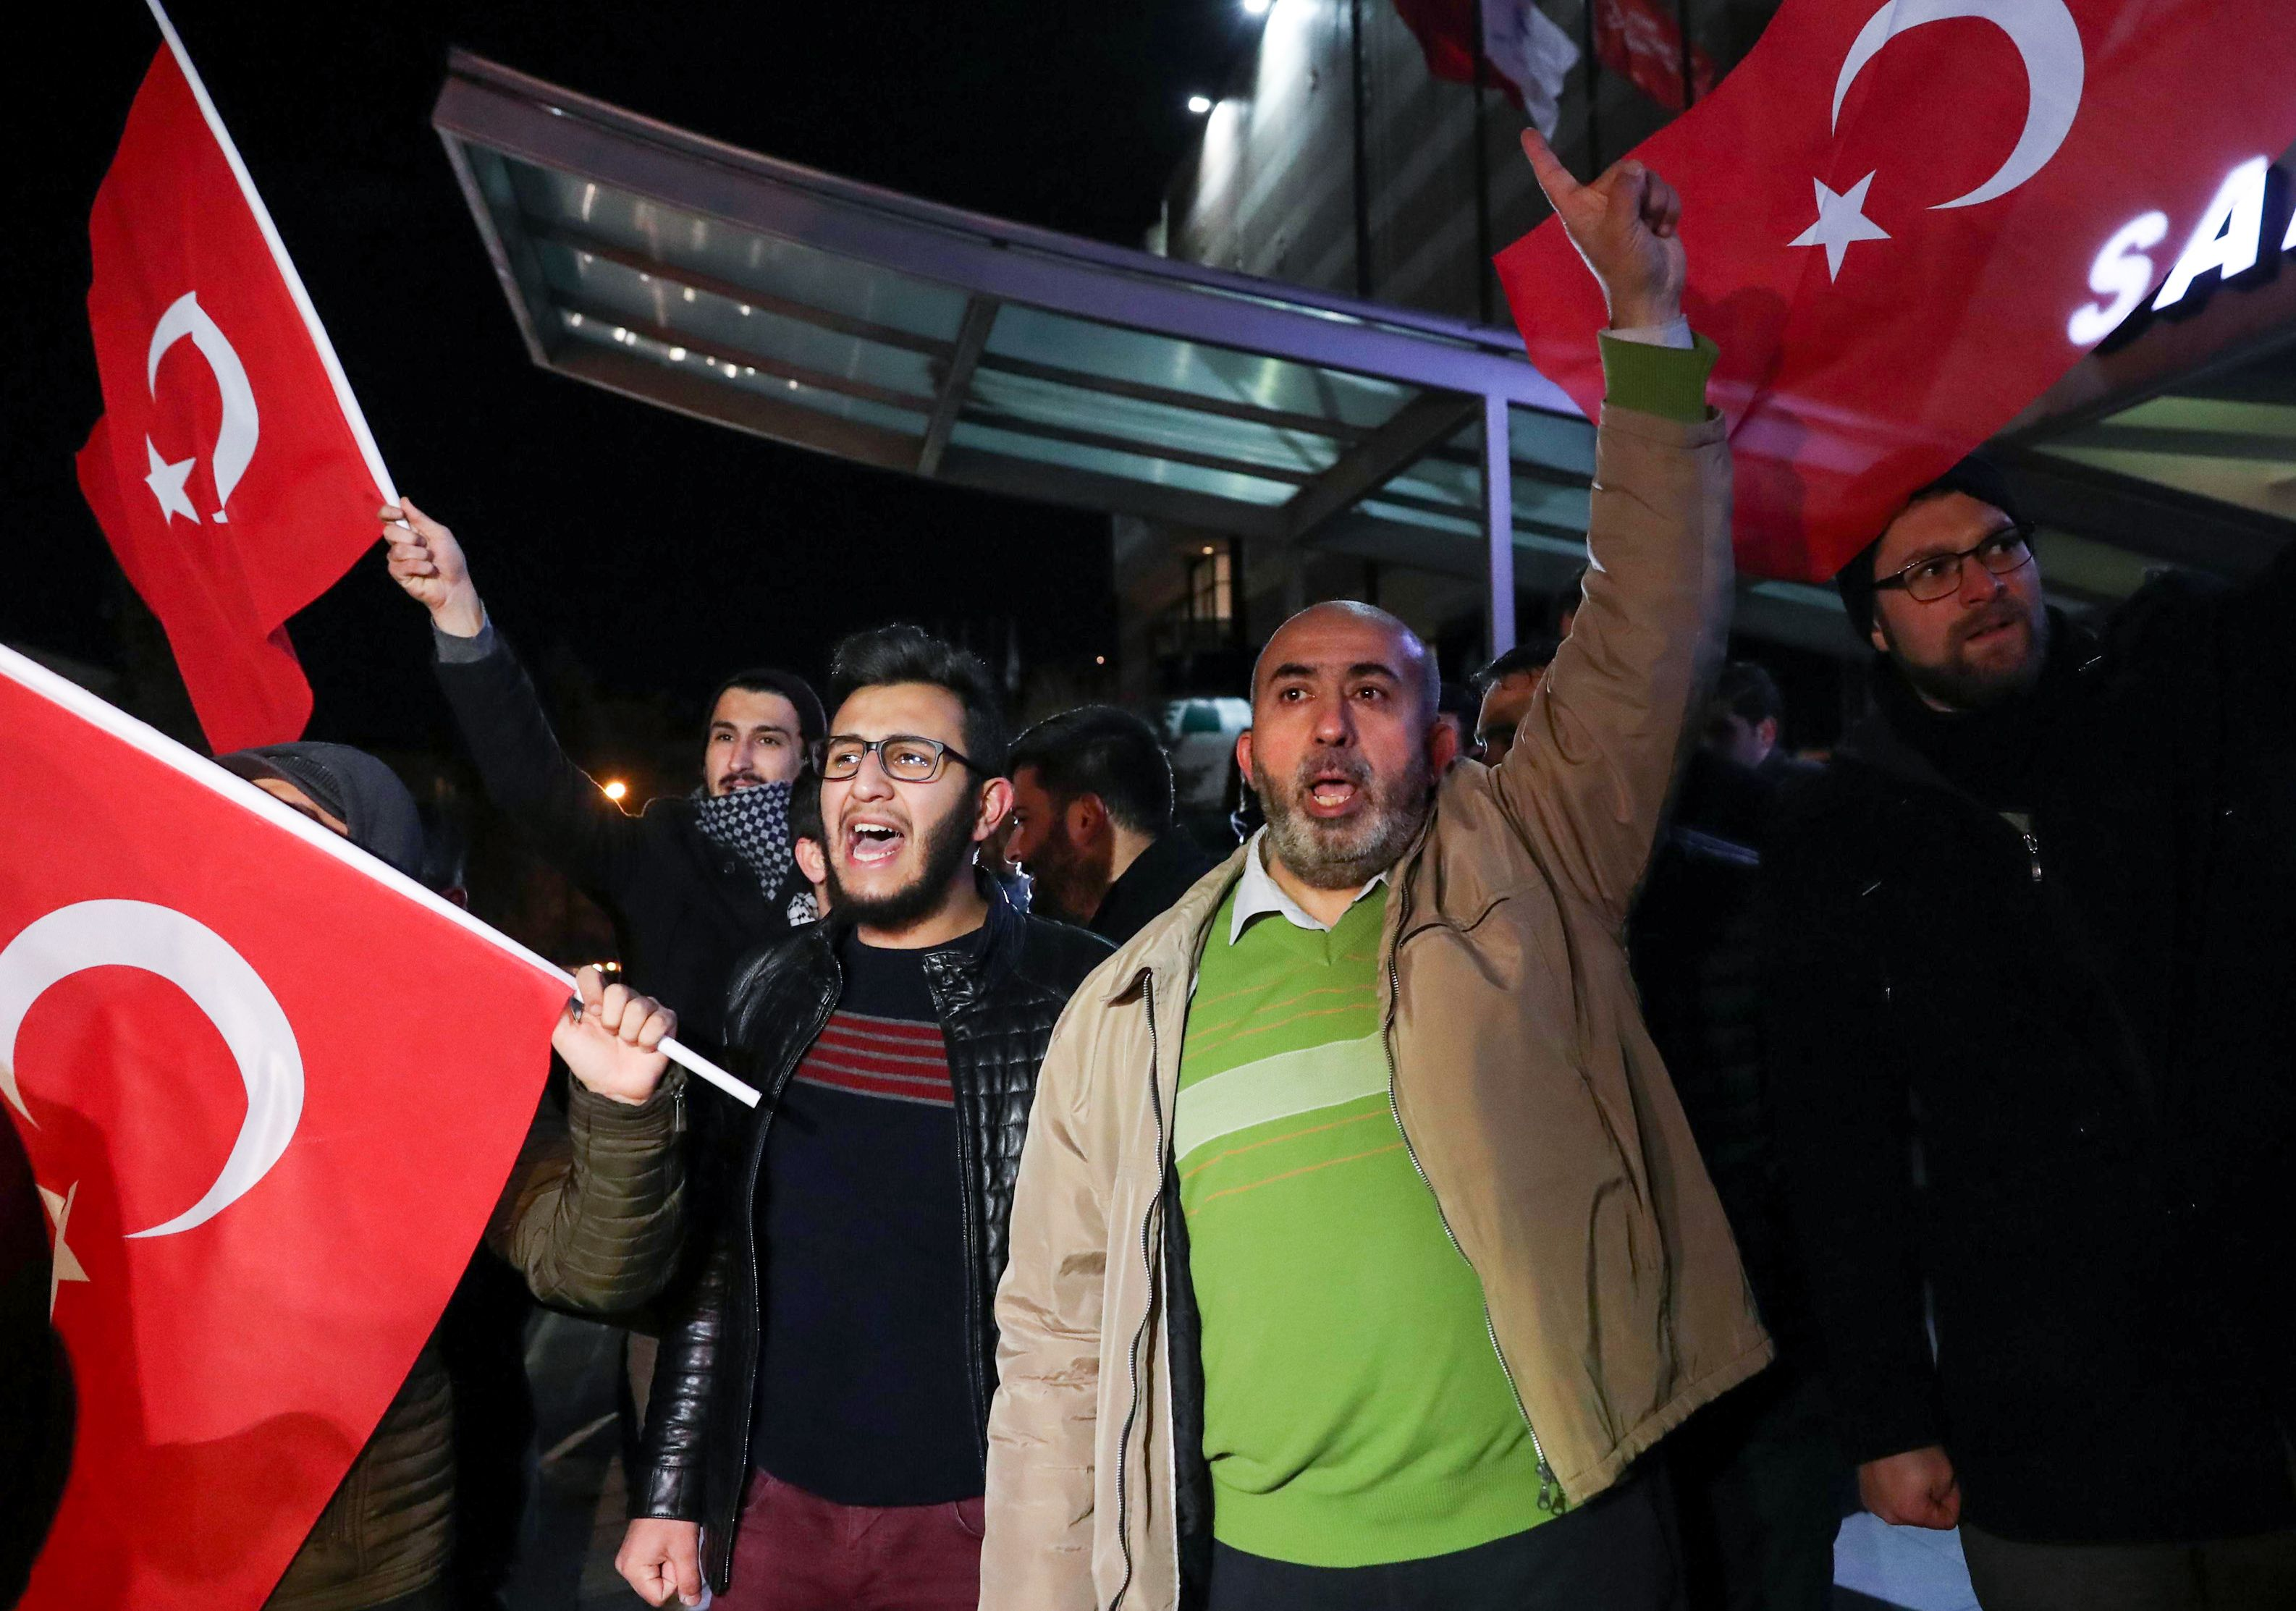 Demonstrators protest next to the US embassy in Ankara on Dec. 6, 2017 after U.S. president recognised the disputed city of Jerusalem as Israel's capital